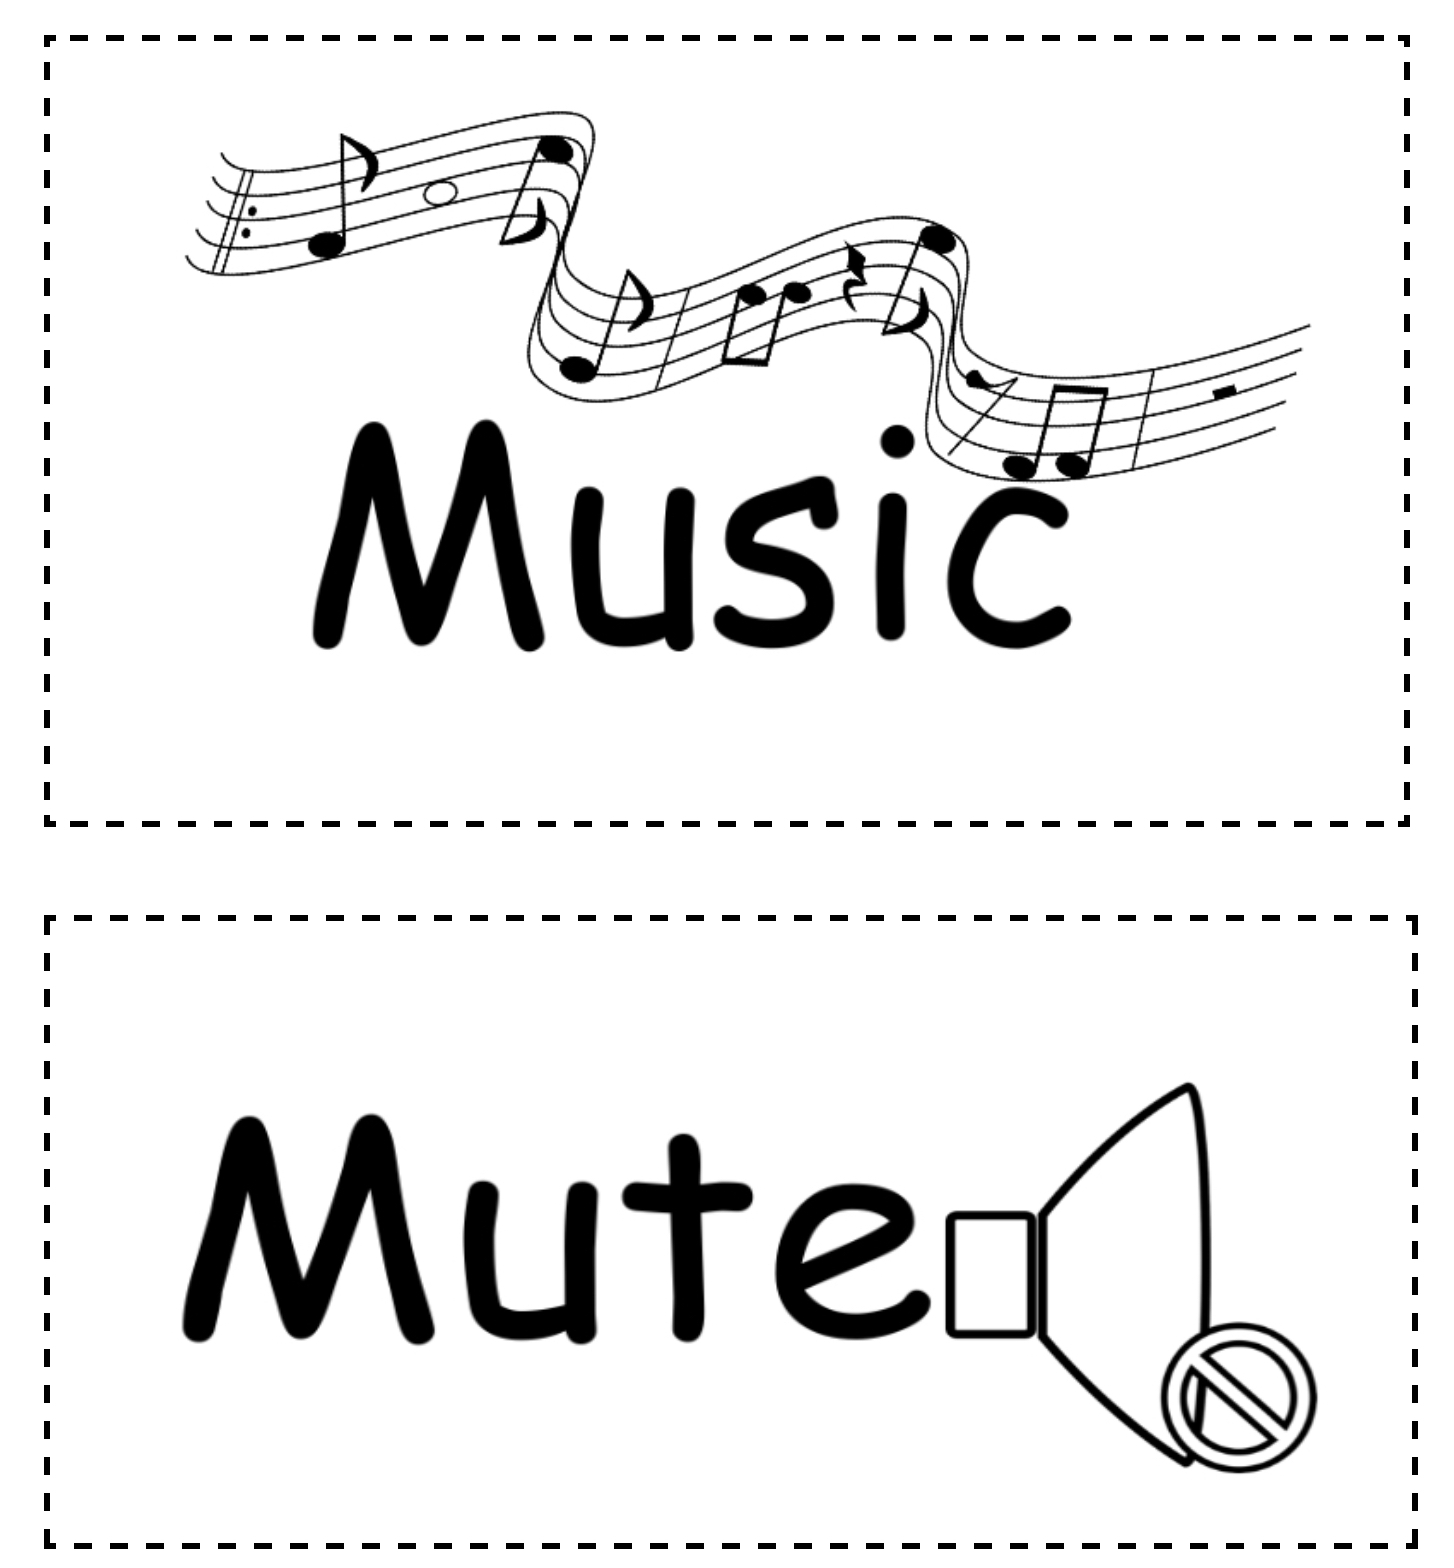 Music and Mute signs